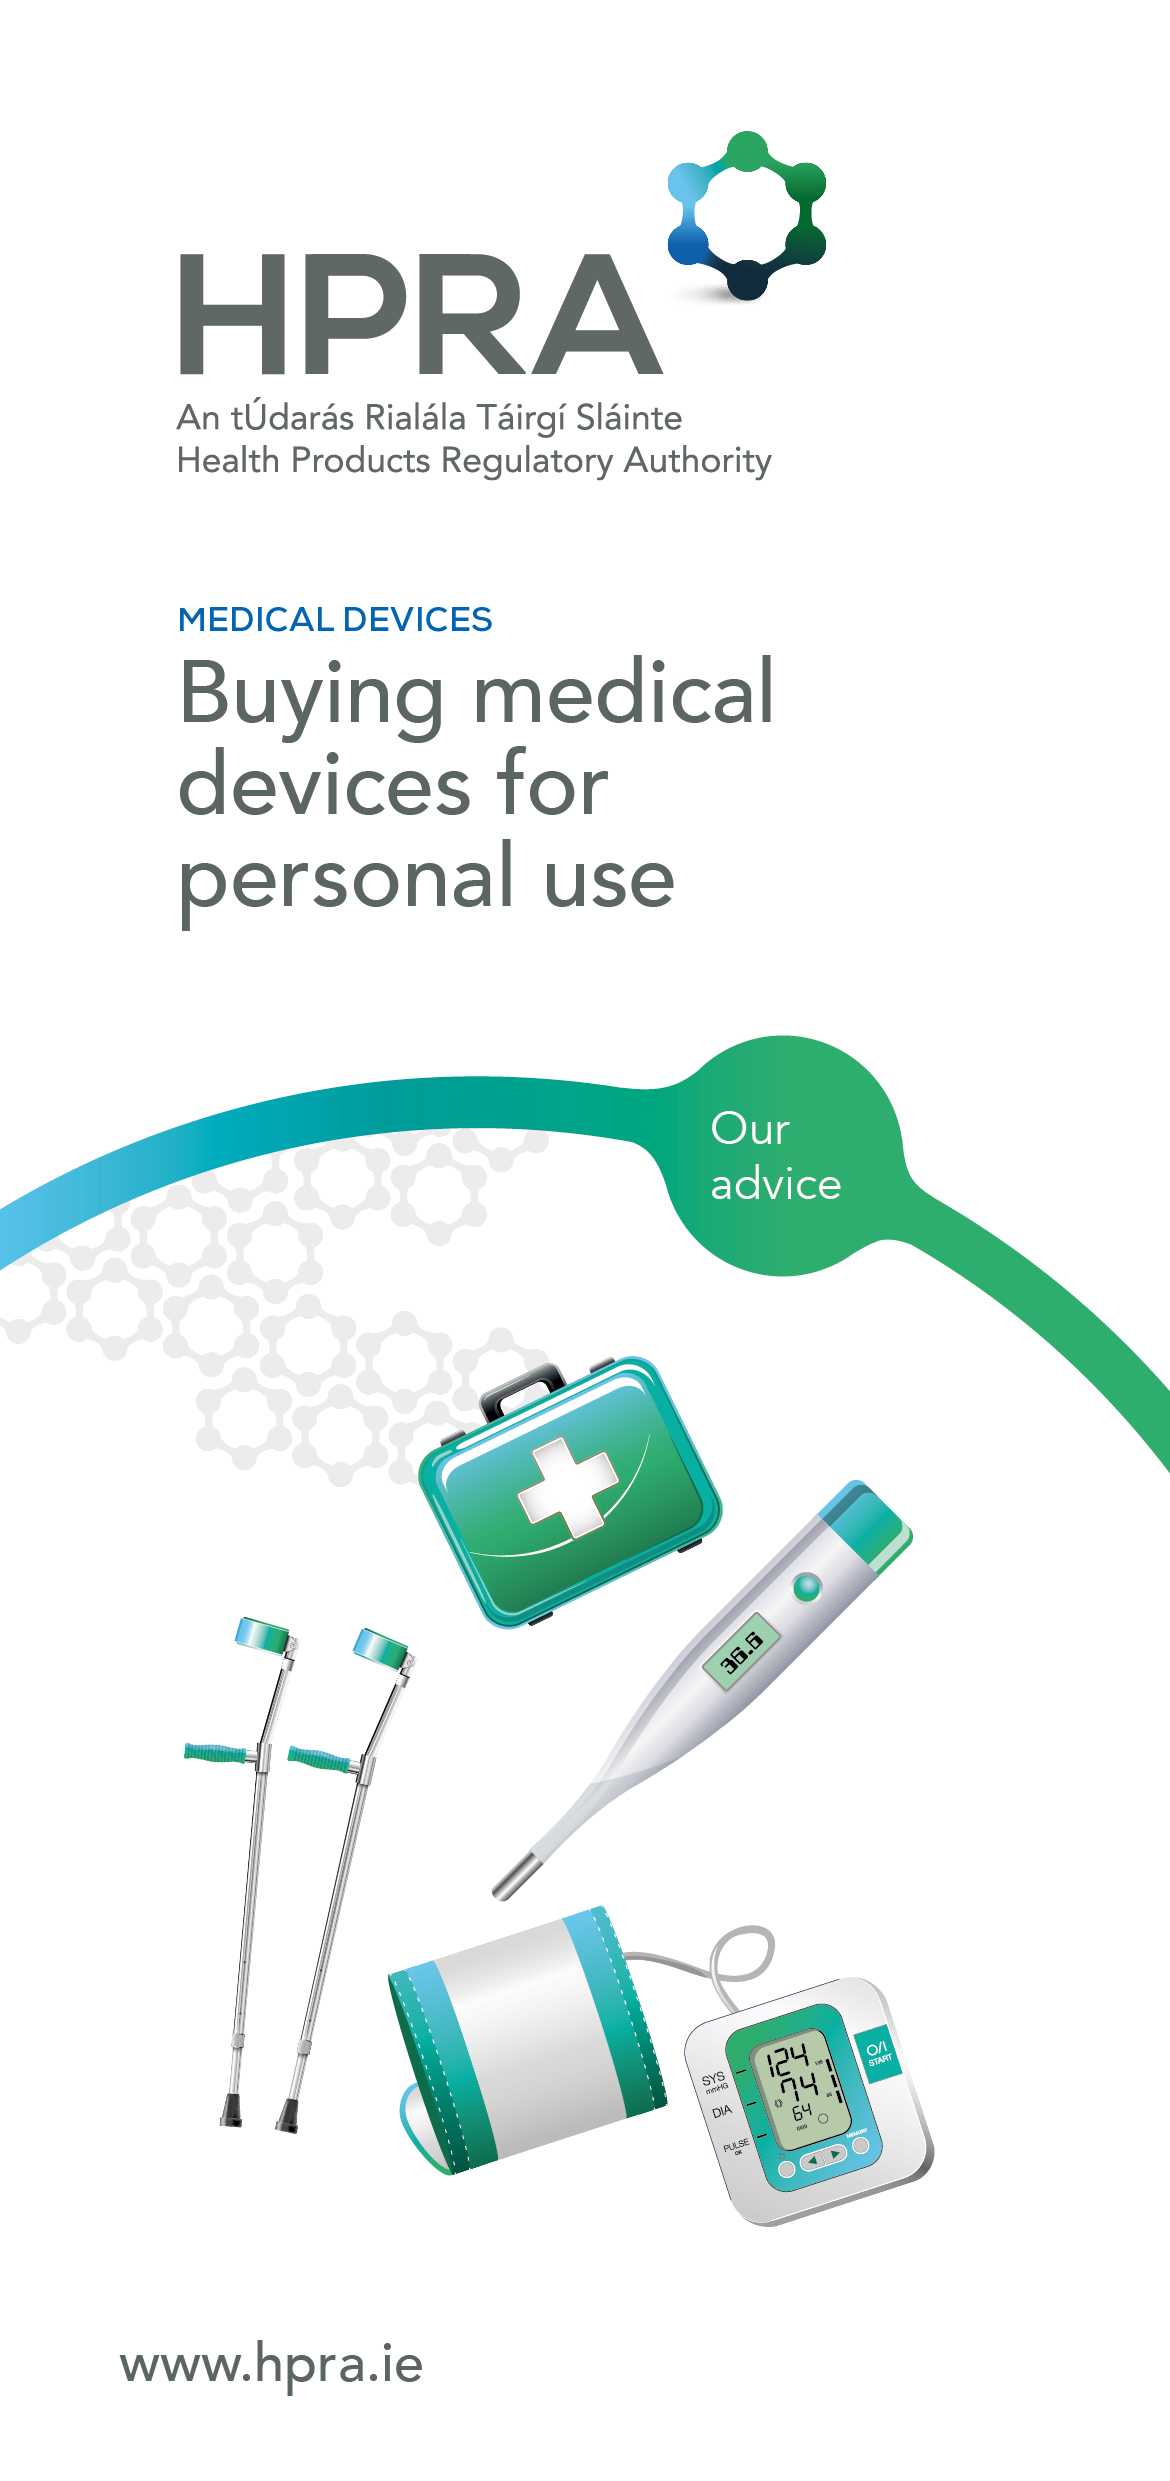 HPRA_Buying medical devices_Cover